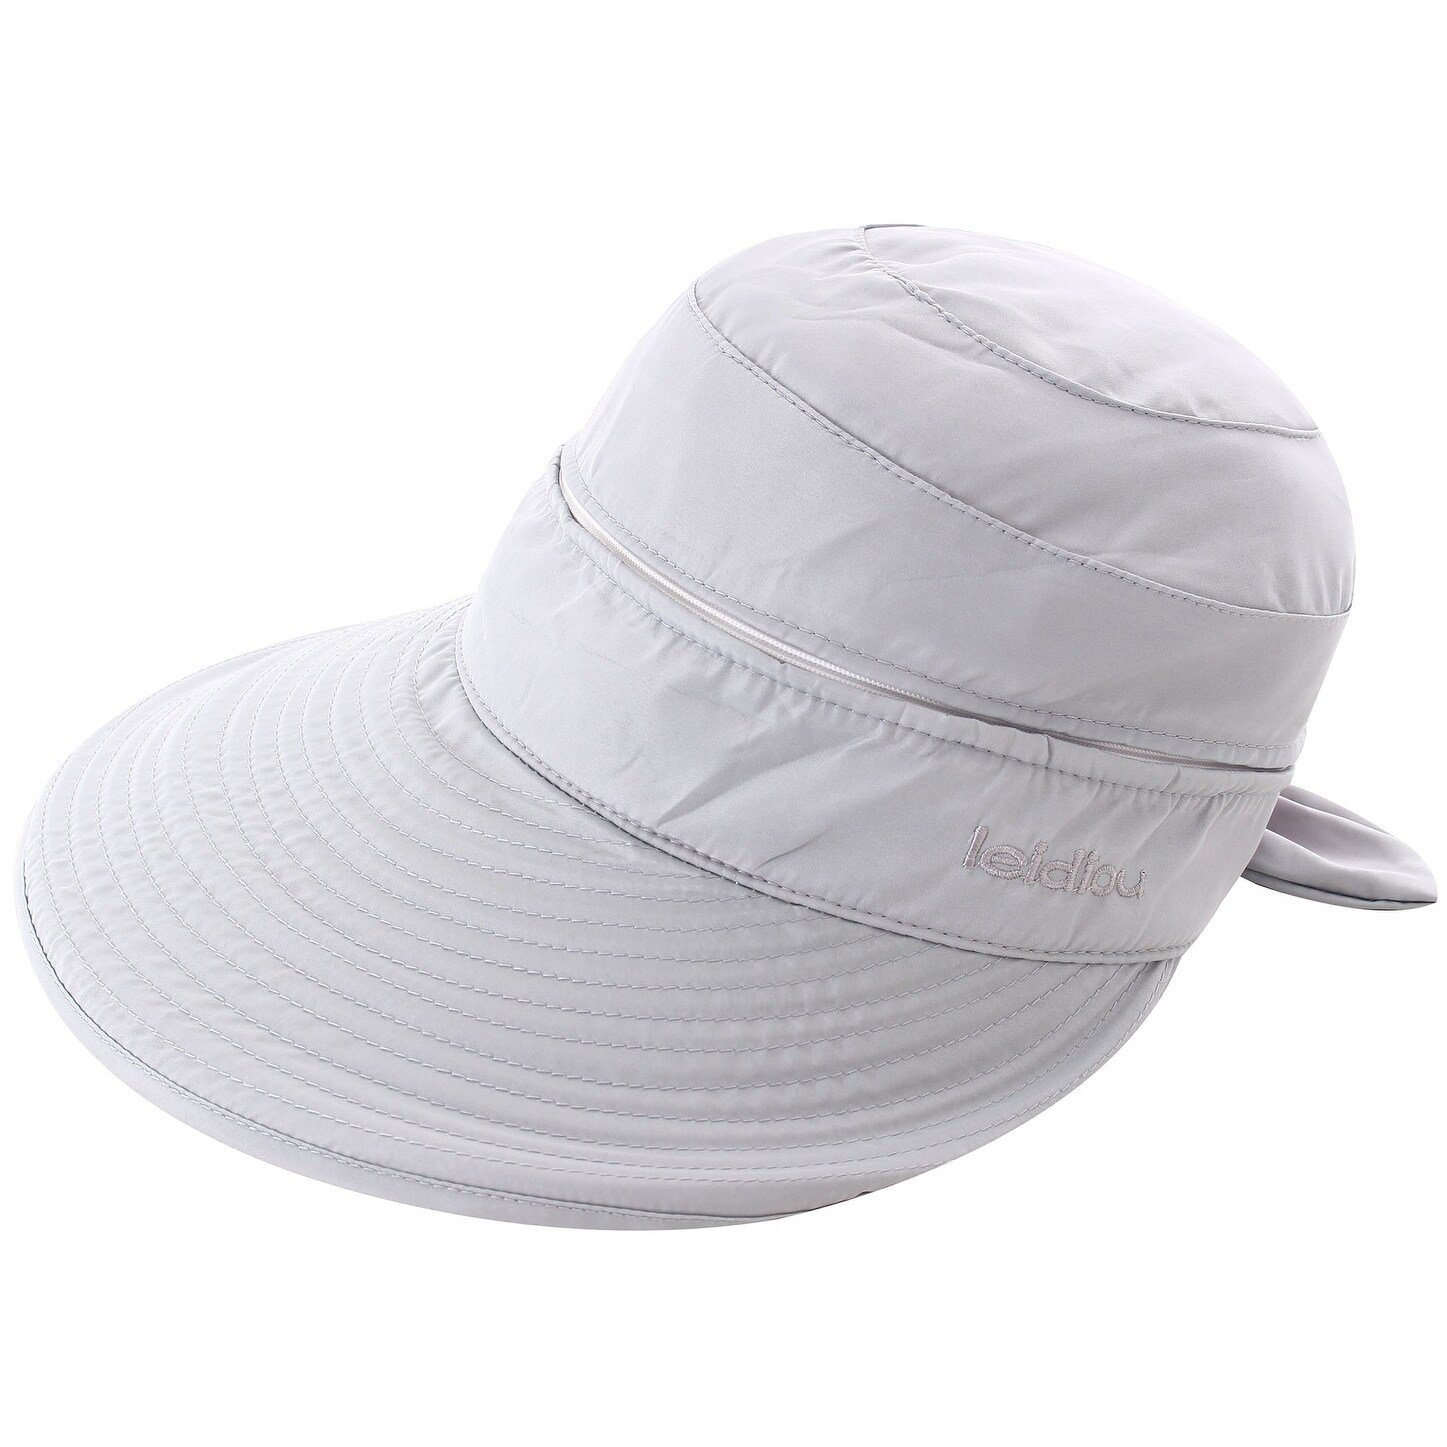 33701315a6b7d Shop Women s UPF 50+ UV Sun Protective Convertible Beach Hat Visor - On  Sale - Free Shipping On Orders Over  45 - Overstock - 19996325